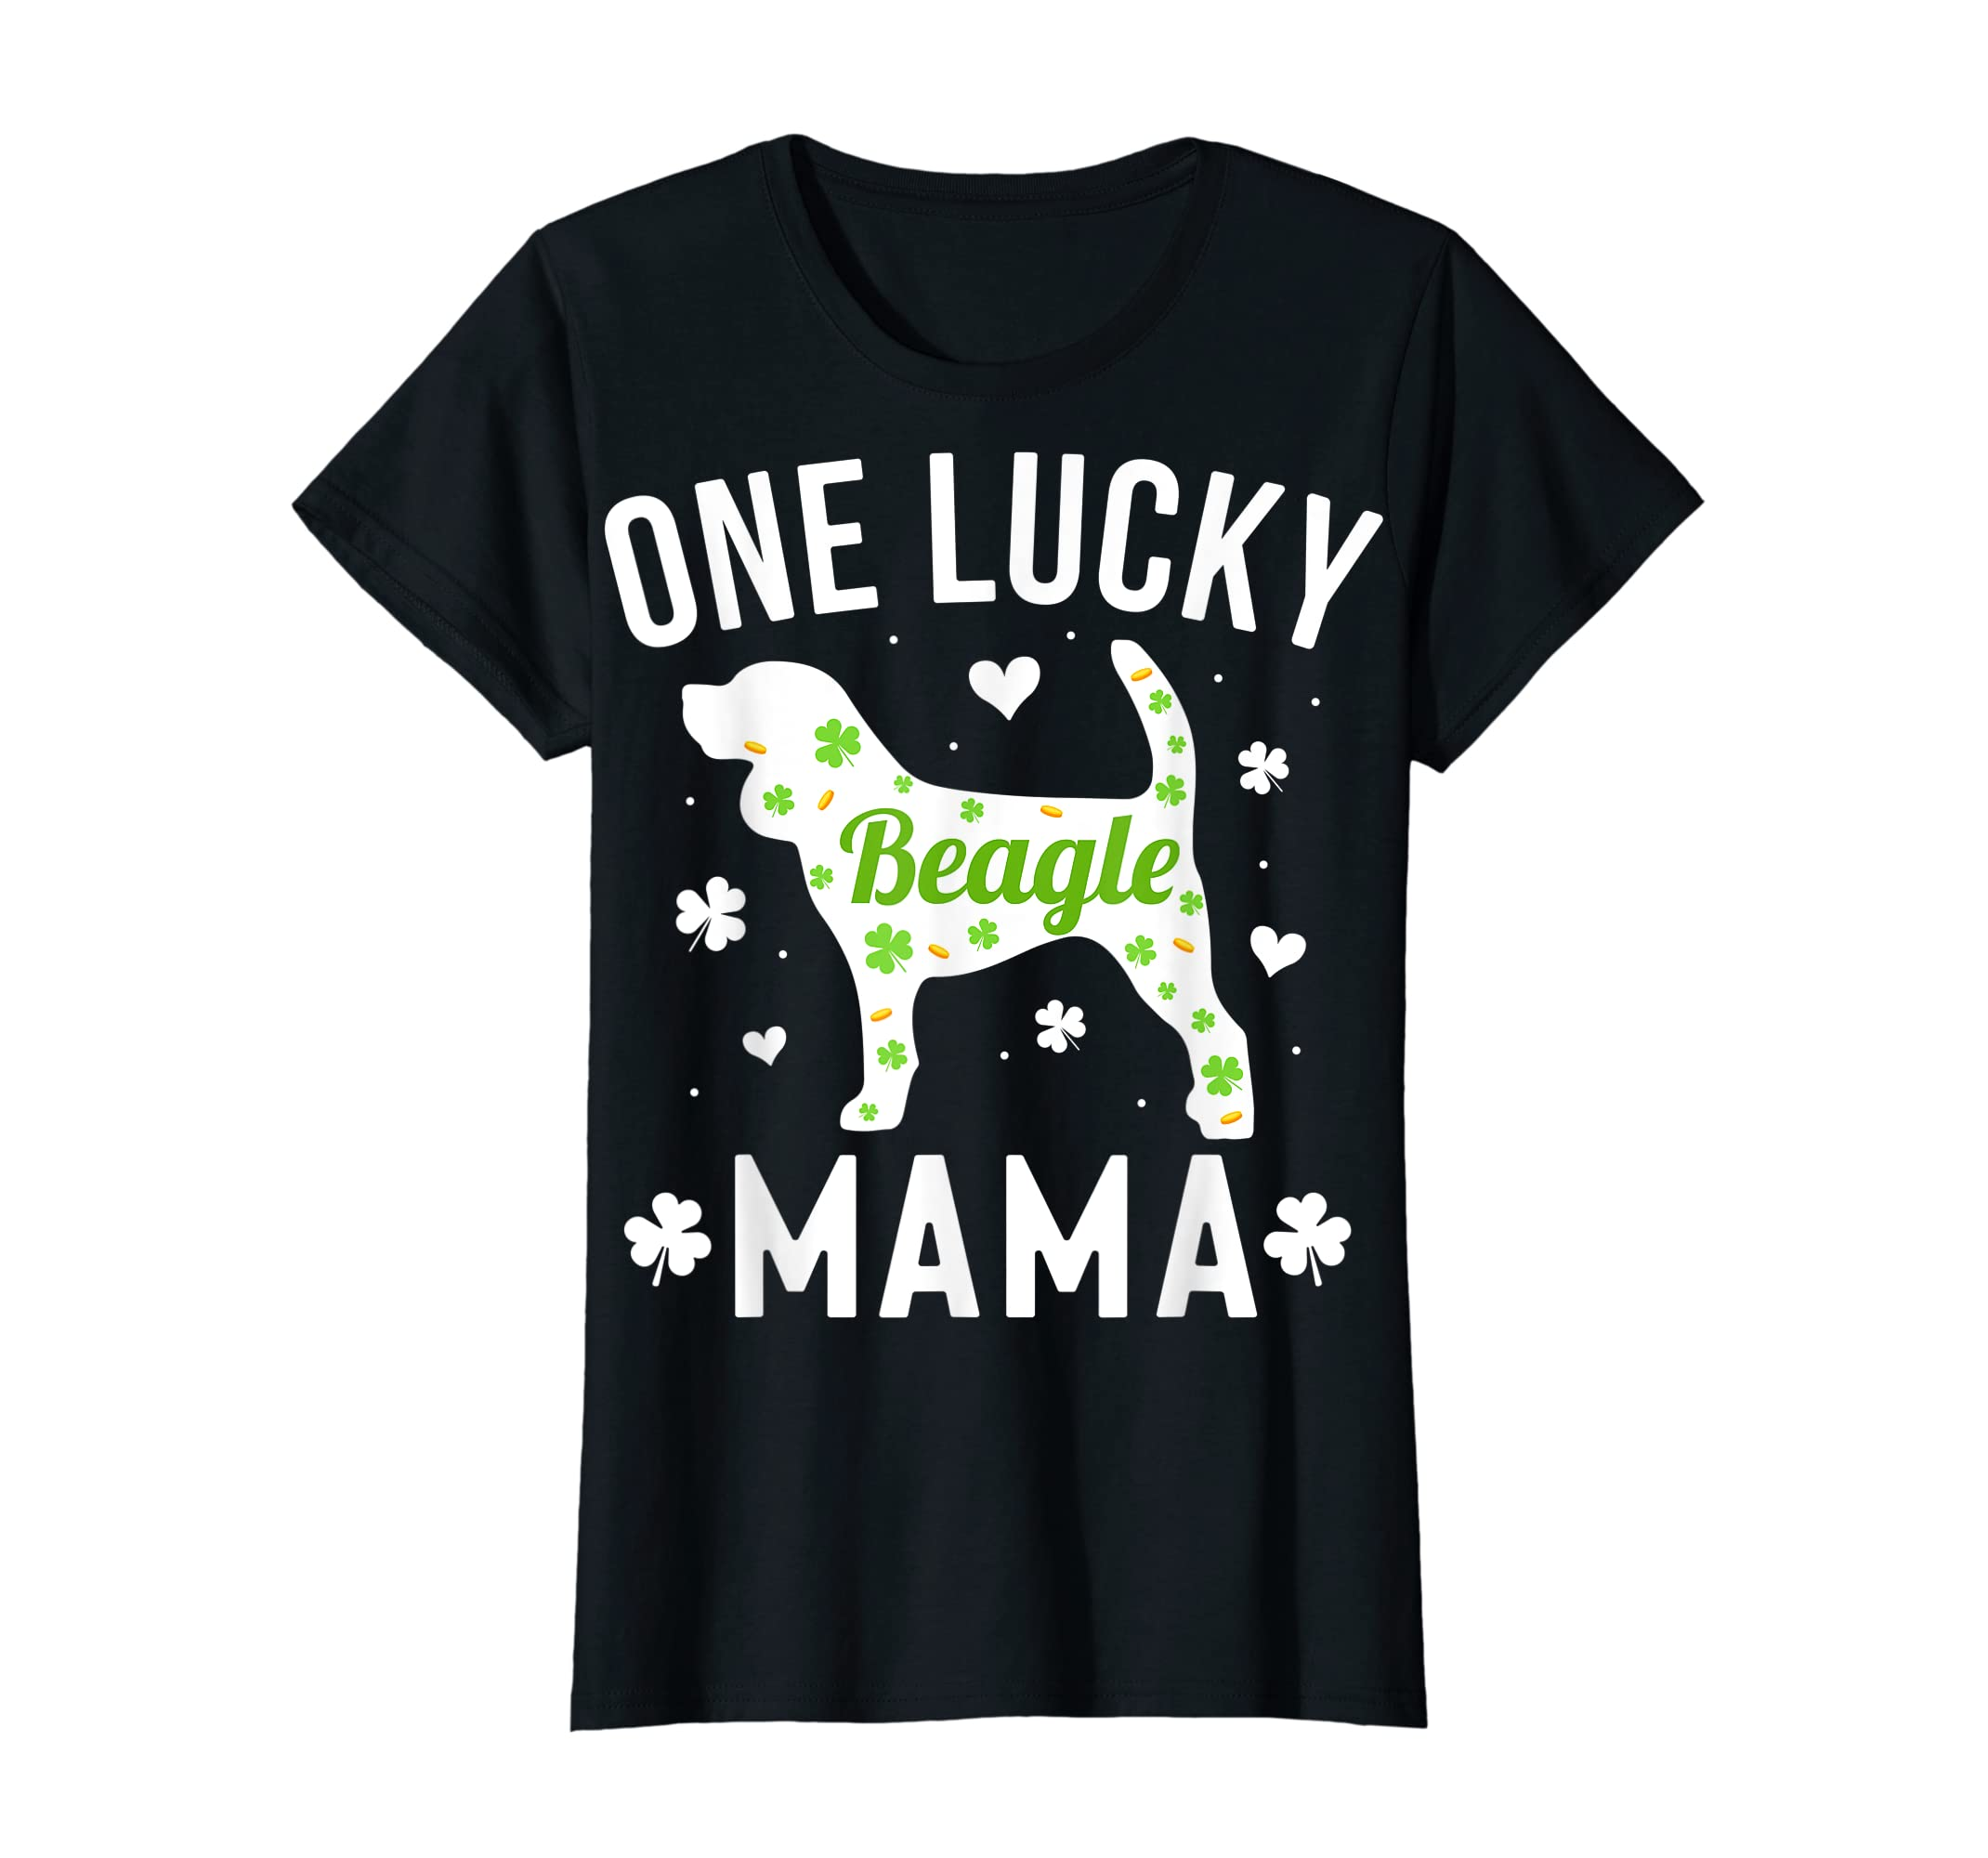 St Patricks Day Beagle Shirt Lucky Mama Mom Dog Gift Tee-Women's T-Shirt-Black